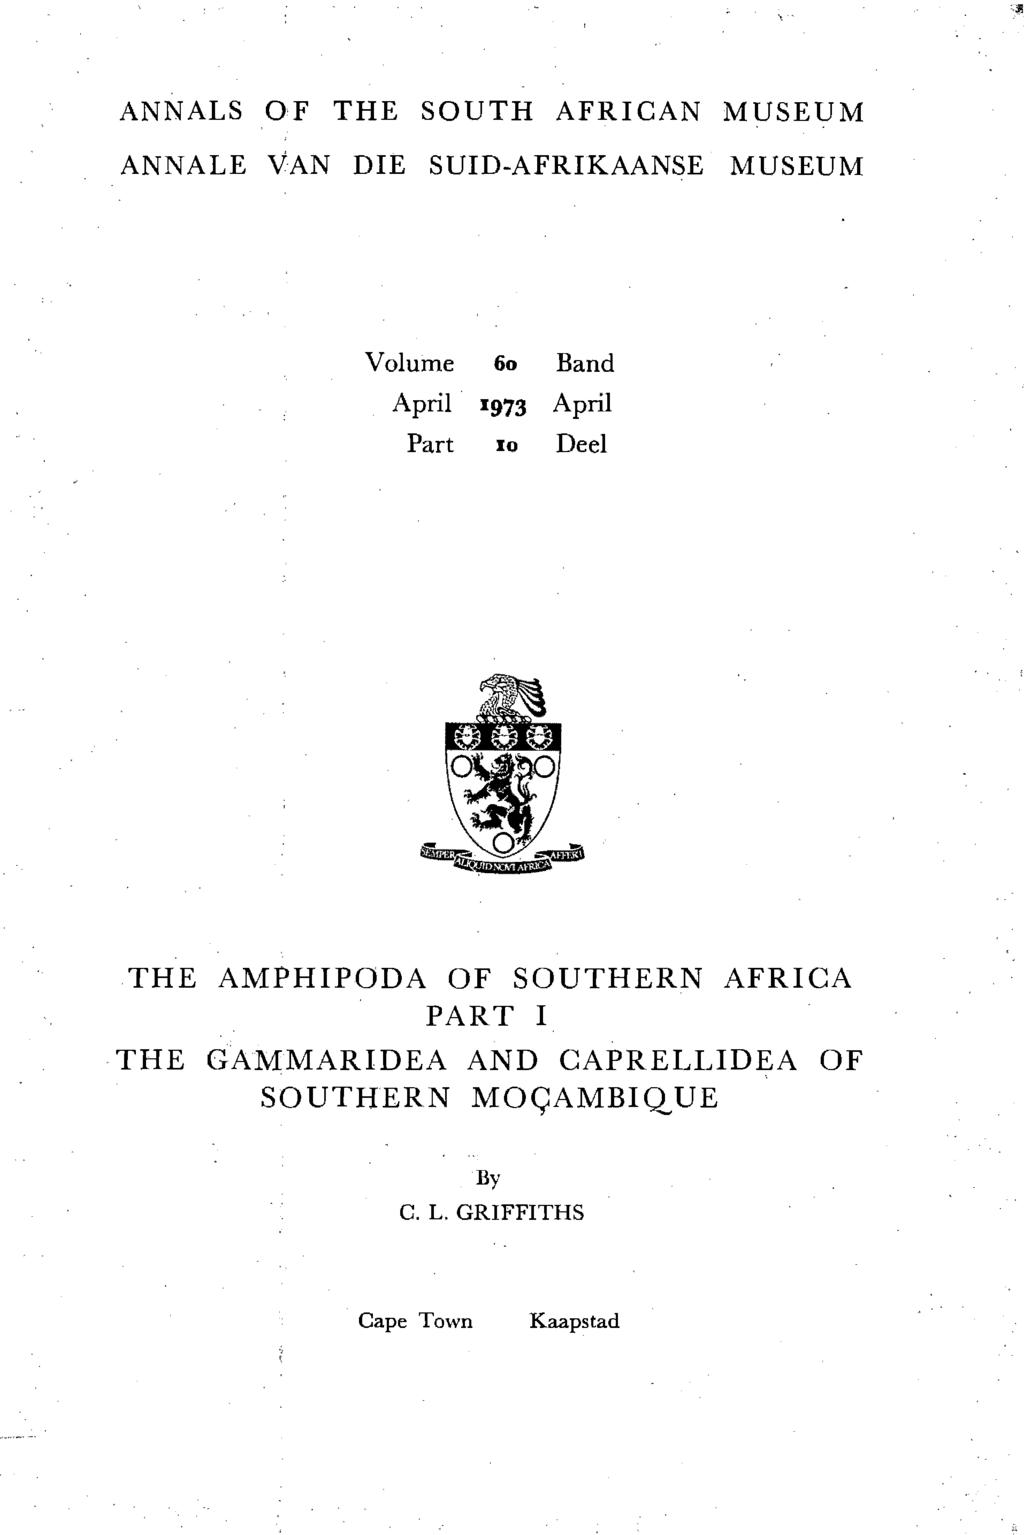 ANNALS OF THE SOUTH AFRICAN MUSEUM ANNALE VAN DIE SUID-AFRIKAANSE MUSEUM Volume 60 Band April 1973 April Part 10 Deel THE